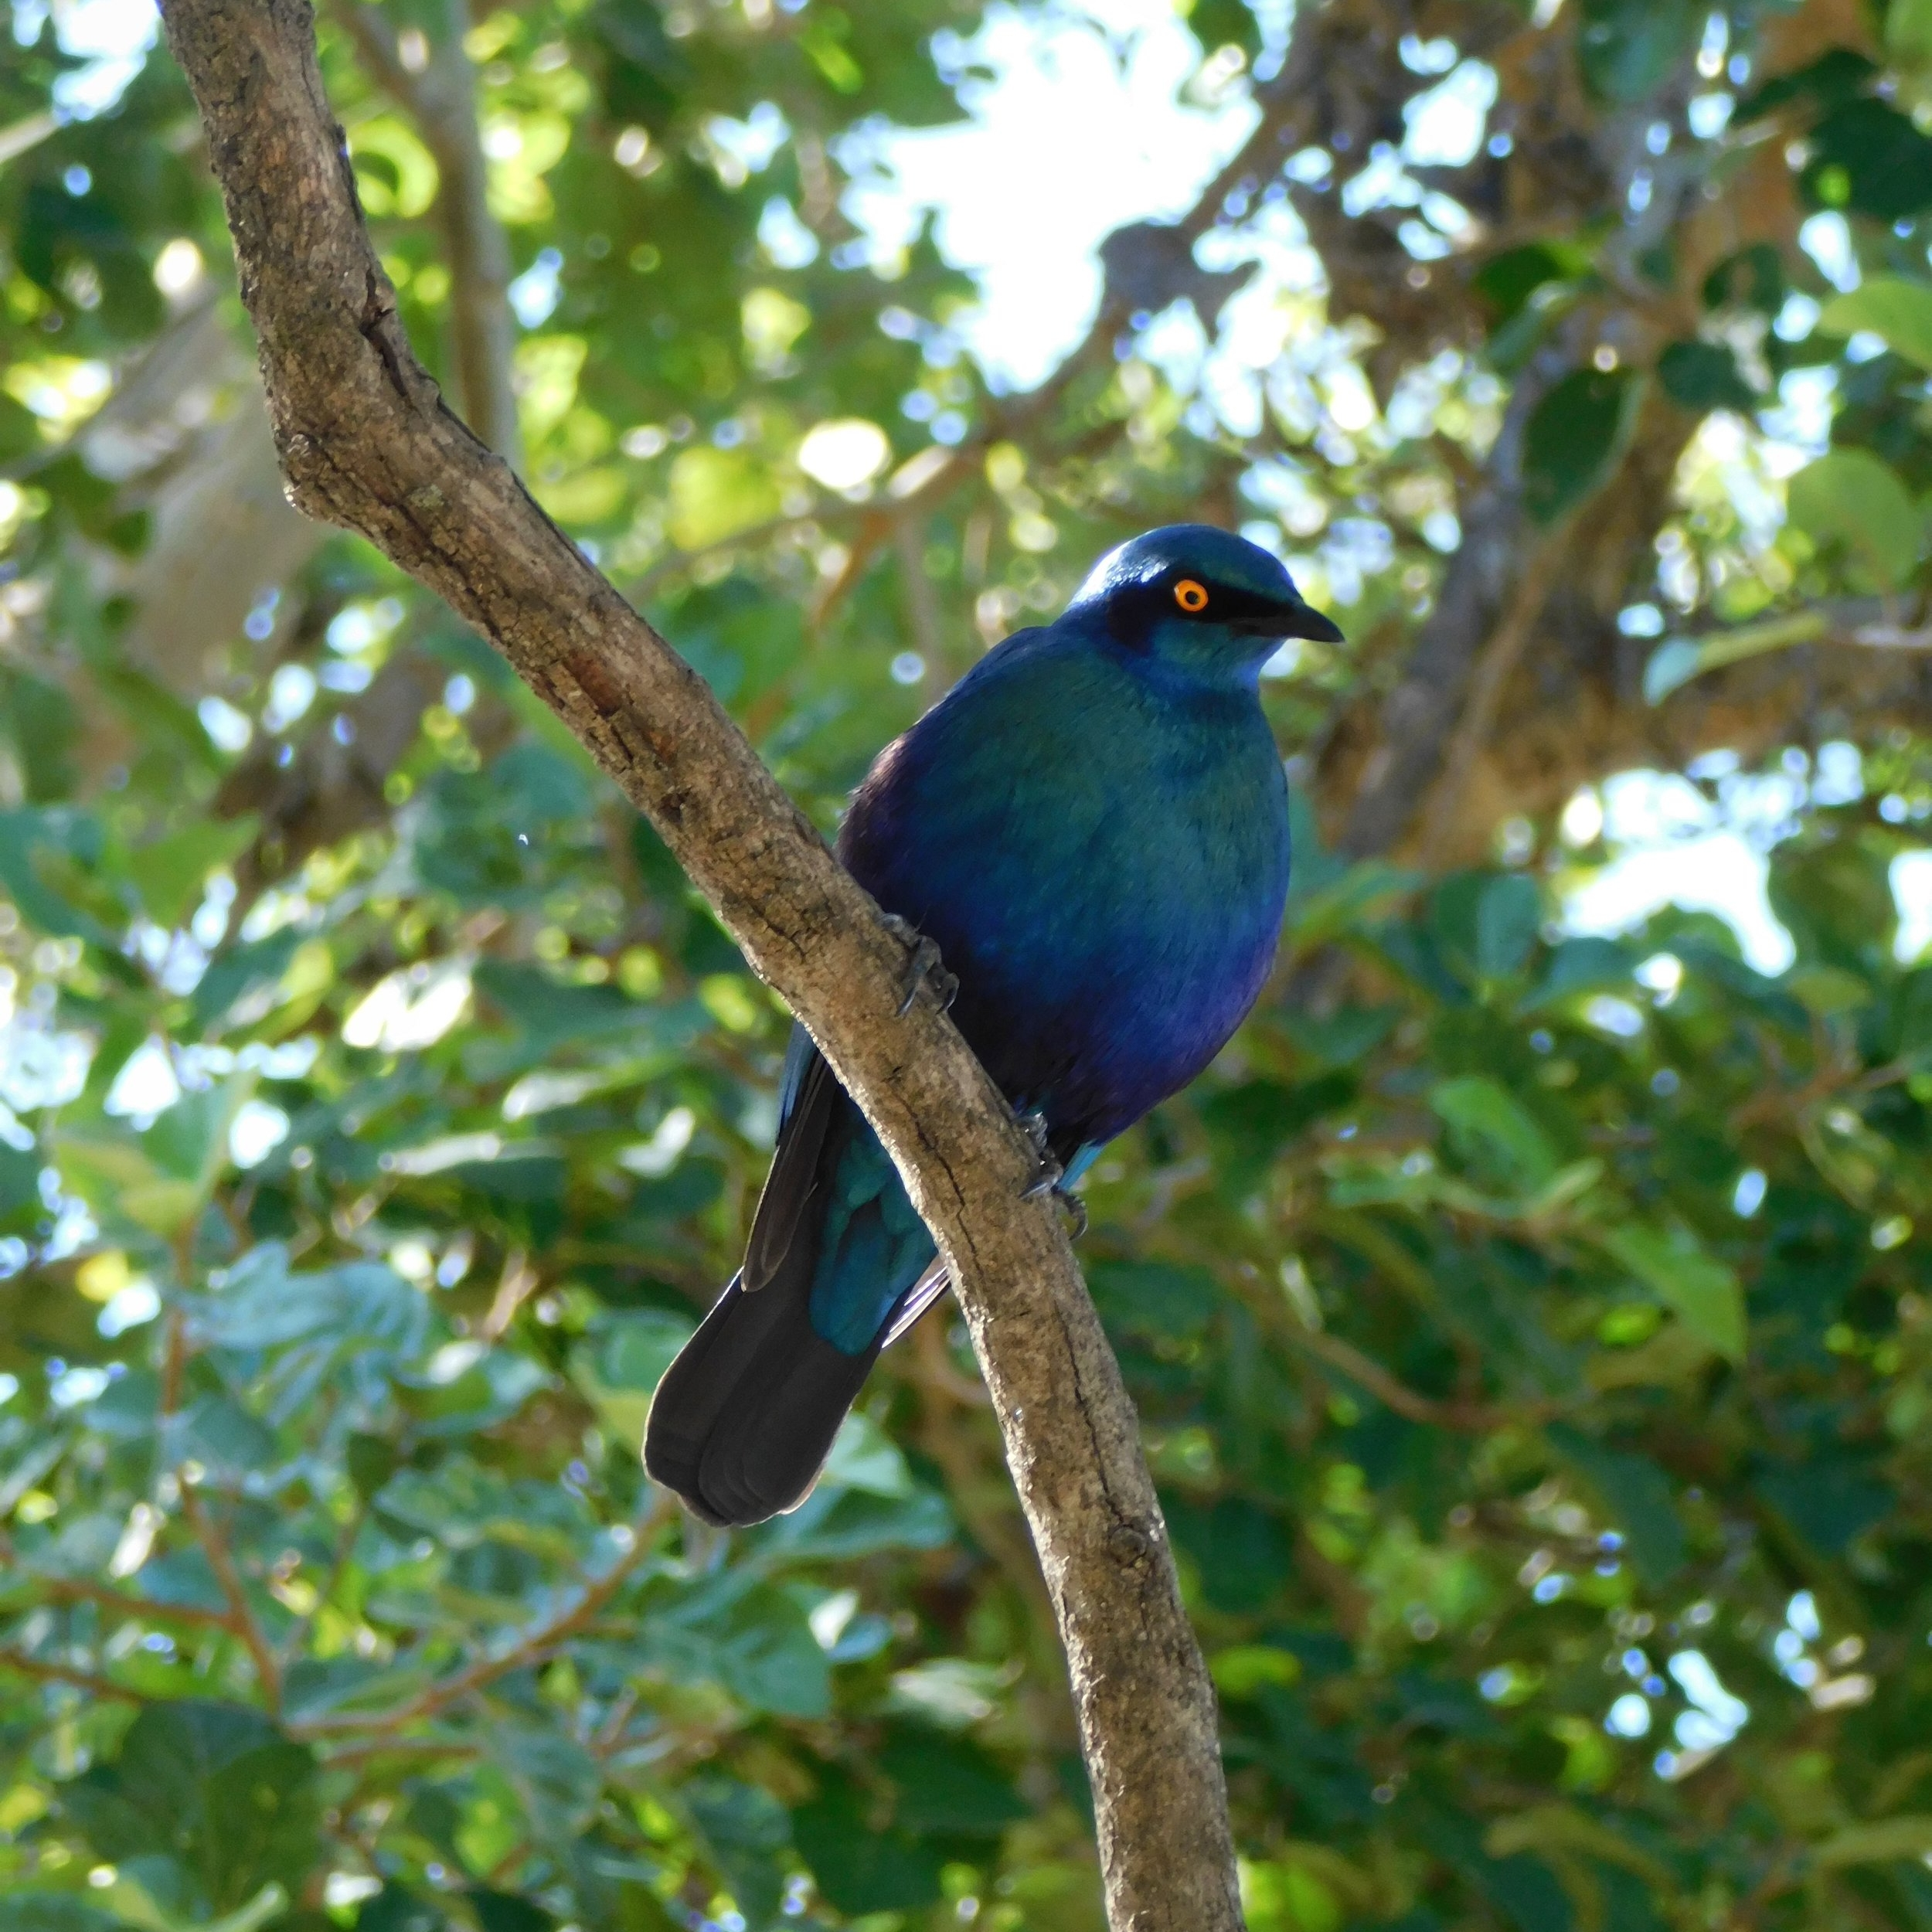 A cape glossy starling in South Africa.